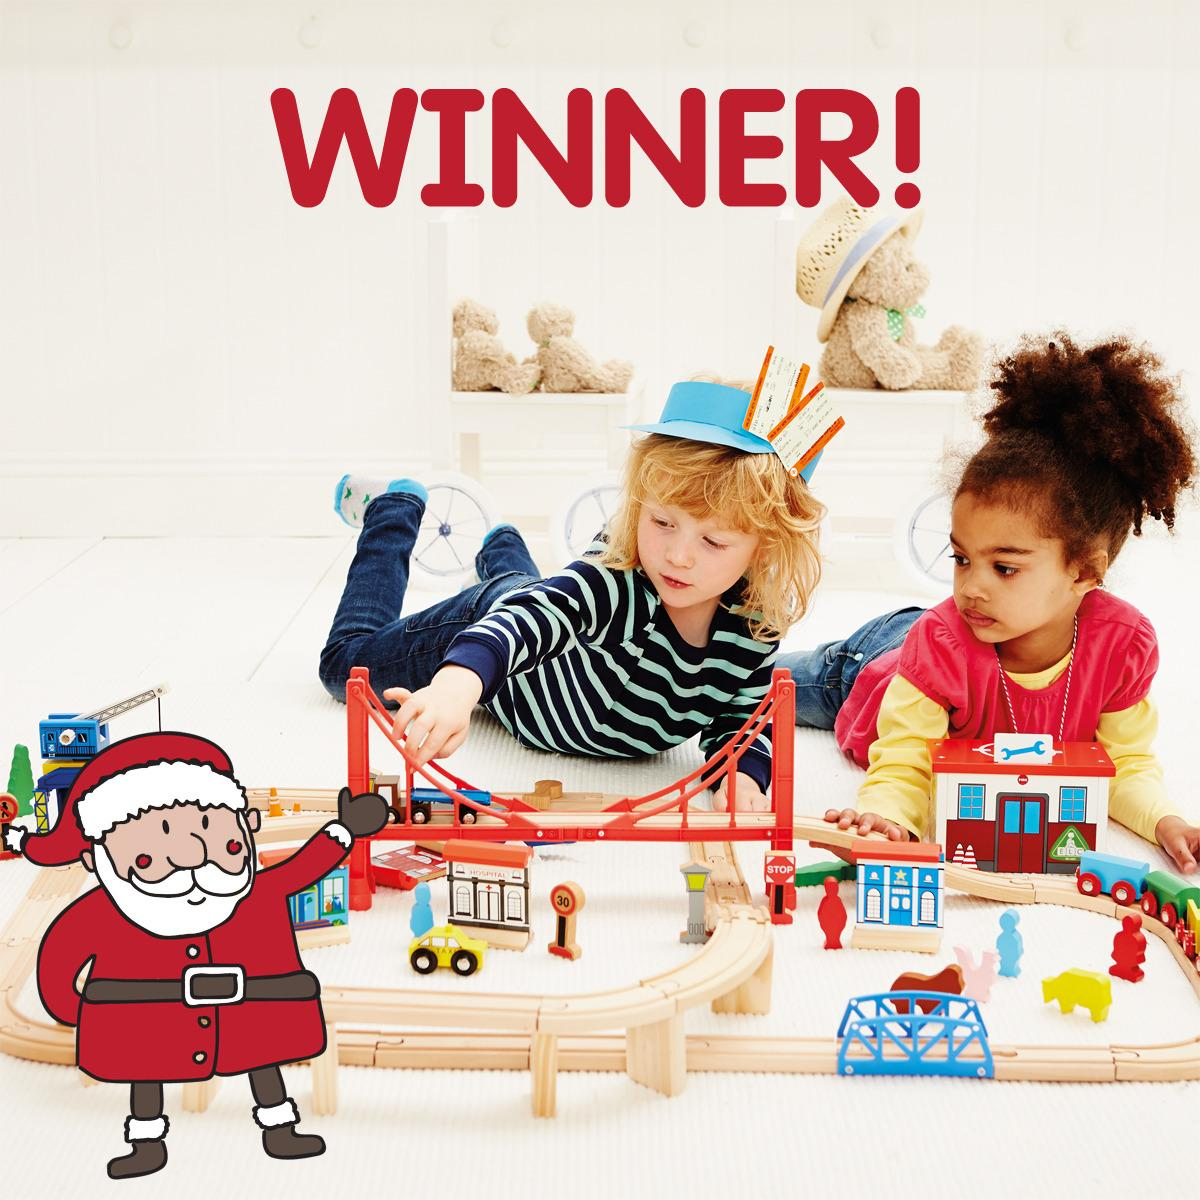 Lovely picture popped up on our timeline - great to see @ELCUK know that #girlslovetrains! MT http://t.co/I4gKXziJTz http://t.co/EvNceBoWm8